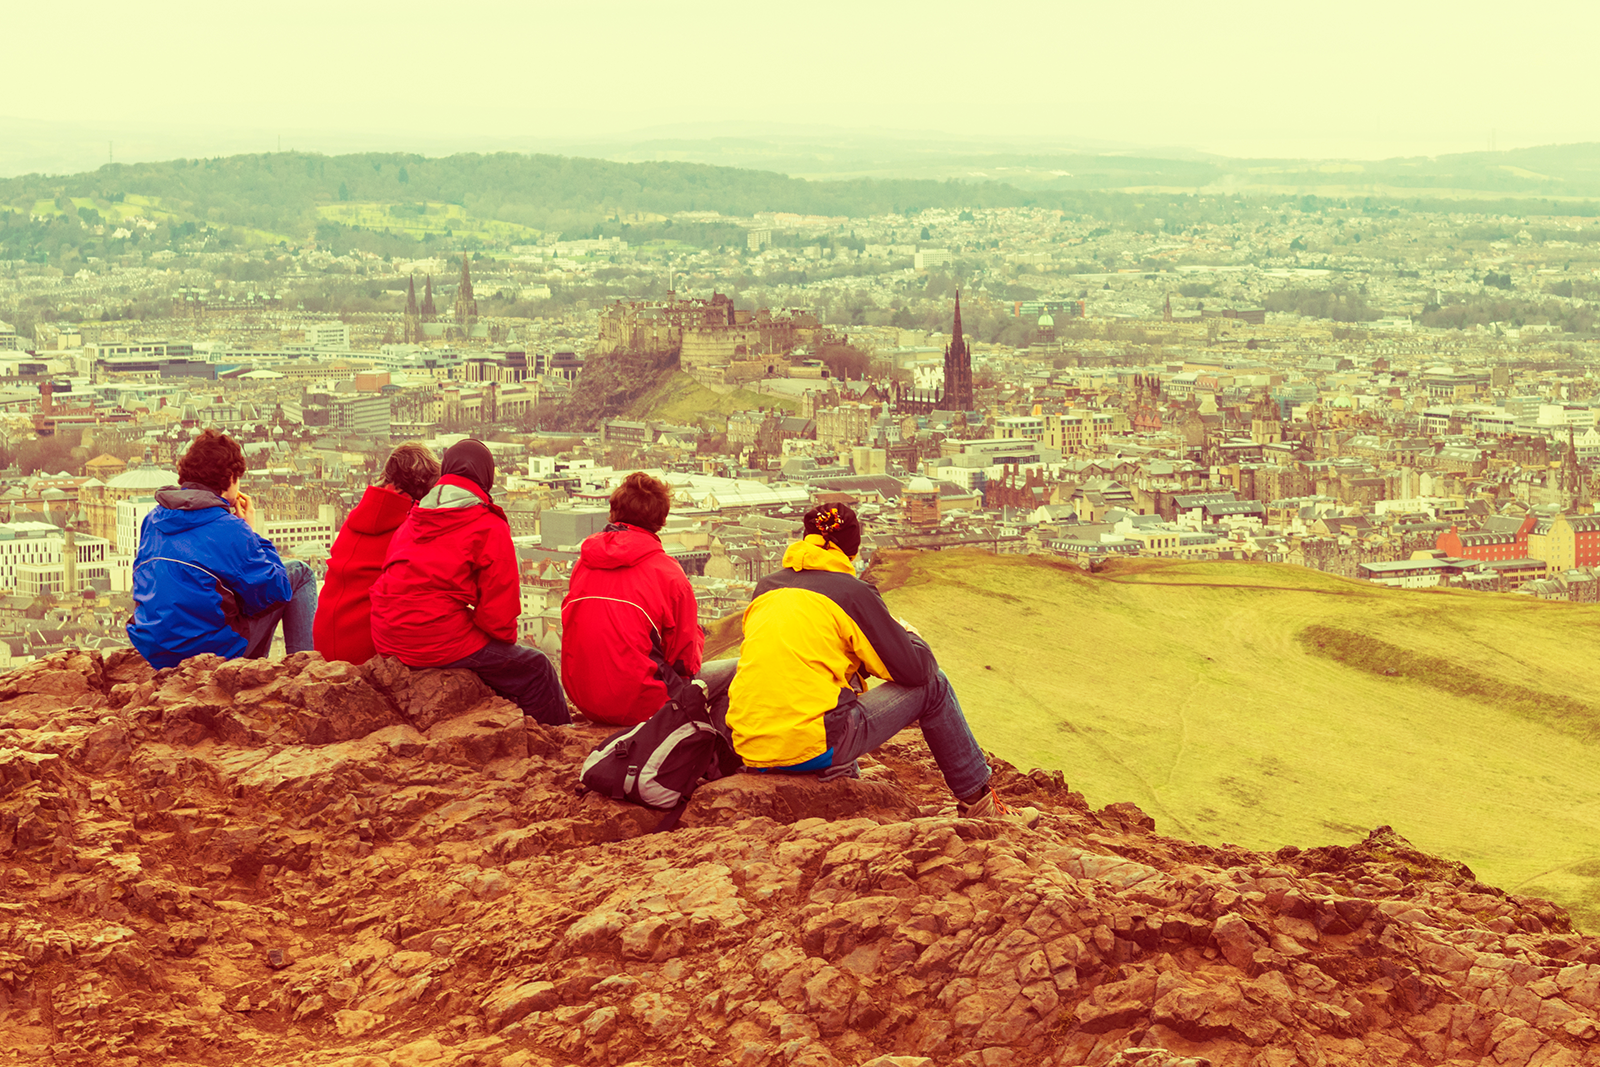 family activities this Easter in Edinburgh